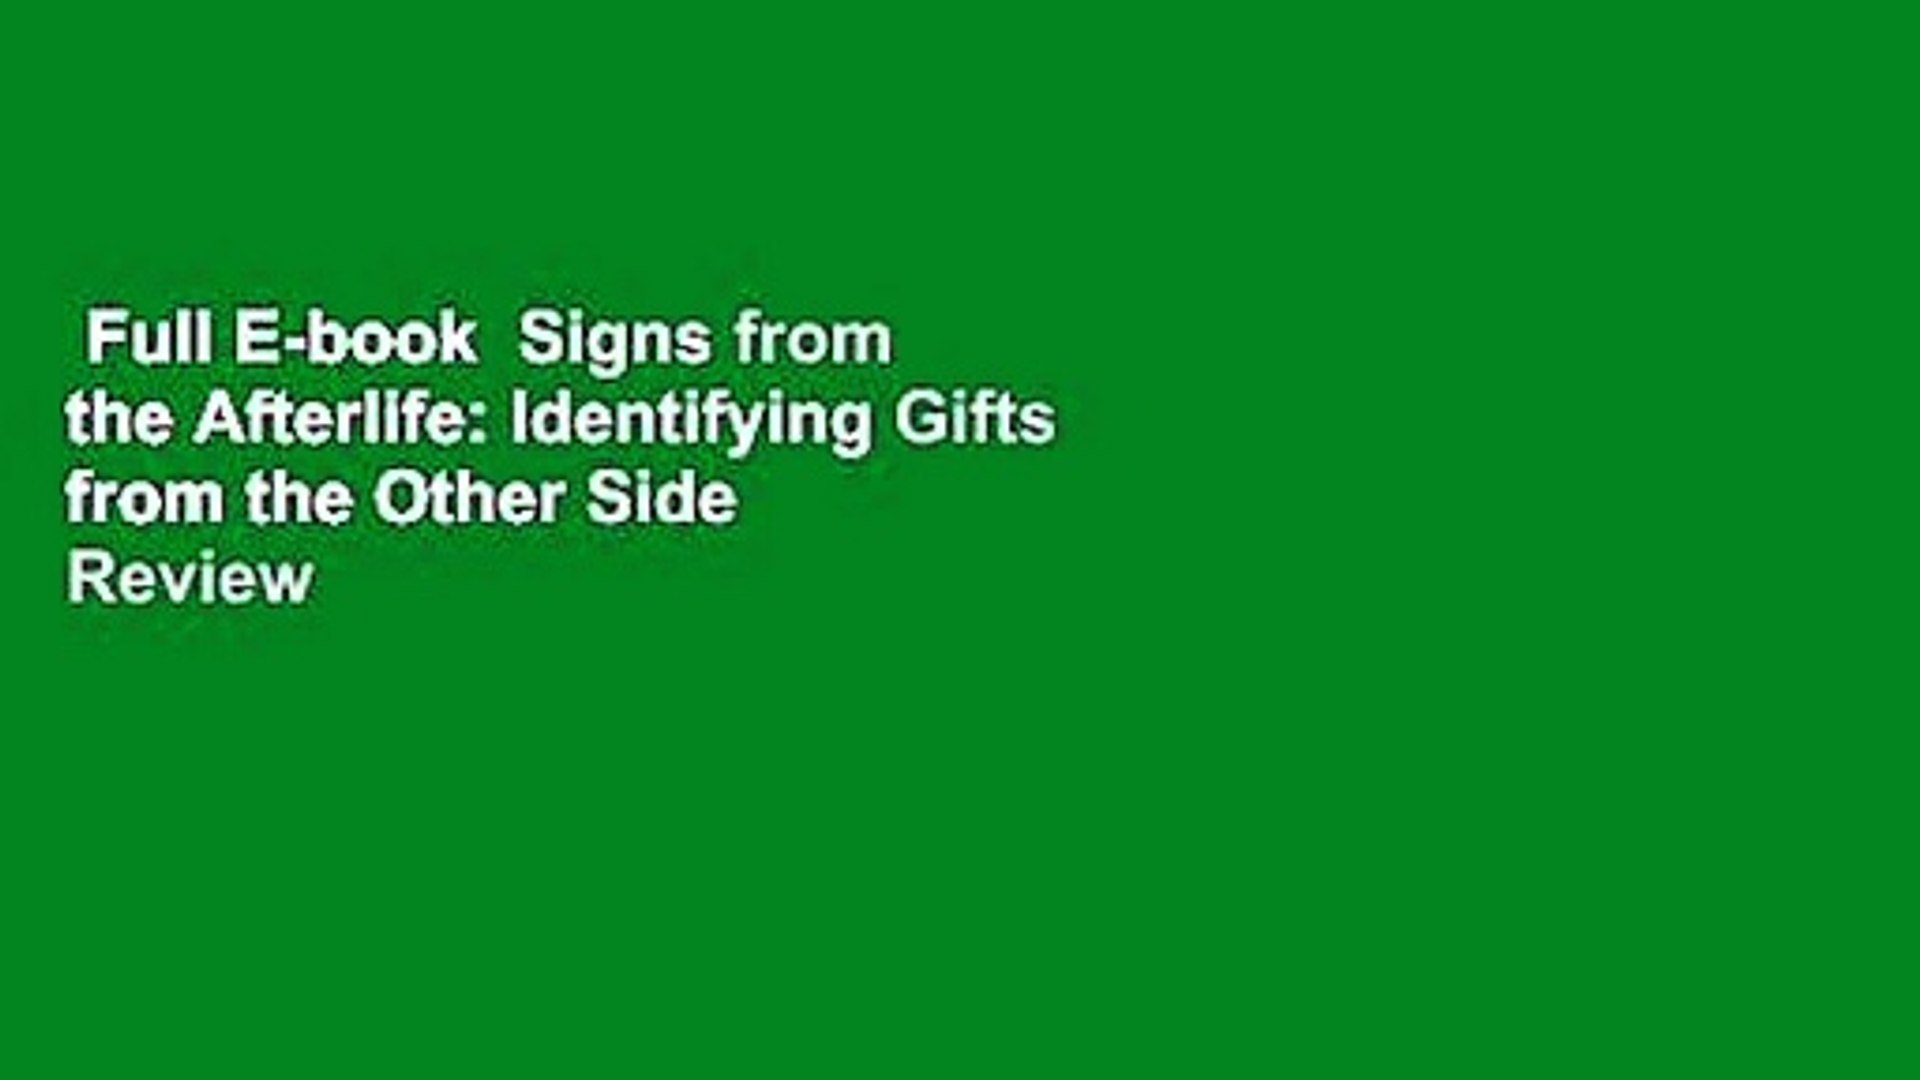 Full E-book  Signs from the Afterlife: Identifying Gifts from the Other Side  Review